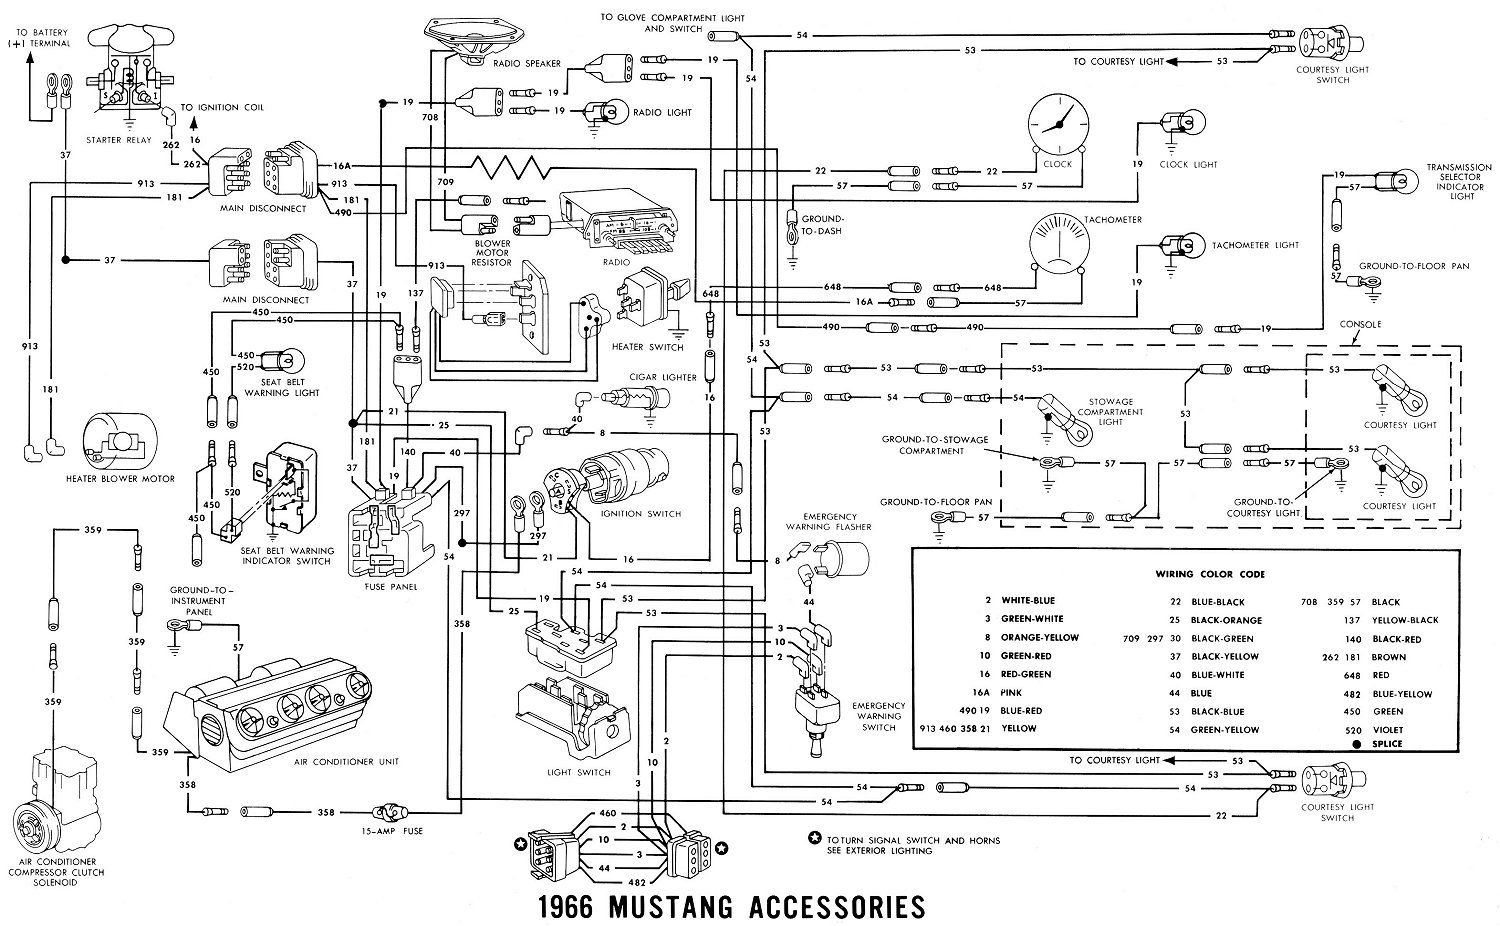 04 F350 4x4 Wiring Diagrams Library Headlight Schematic Vintage Mustang 2006 Schematics